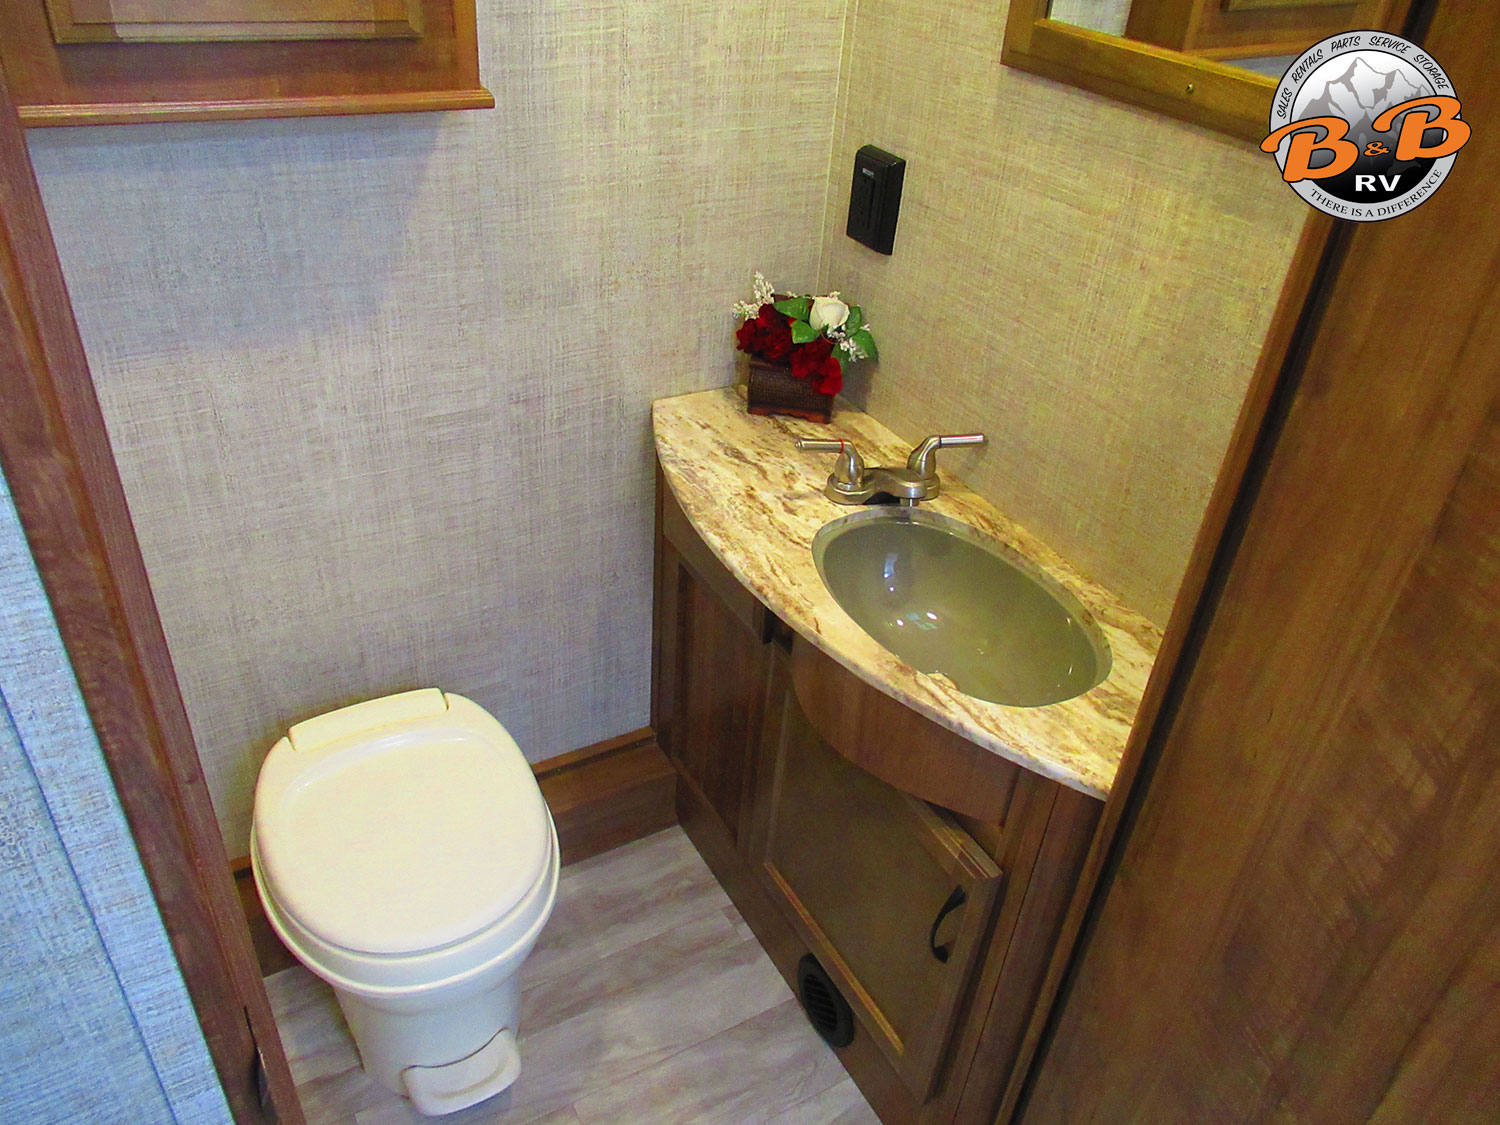 2020 Gulf Stream Conquest 6320 Bathroom